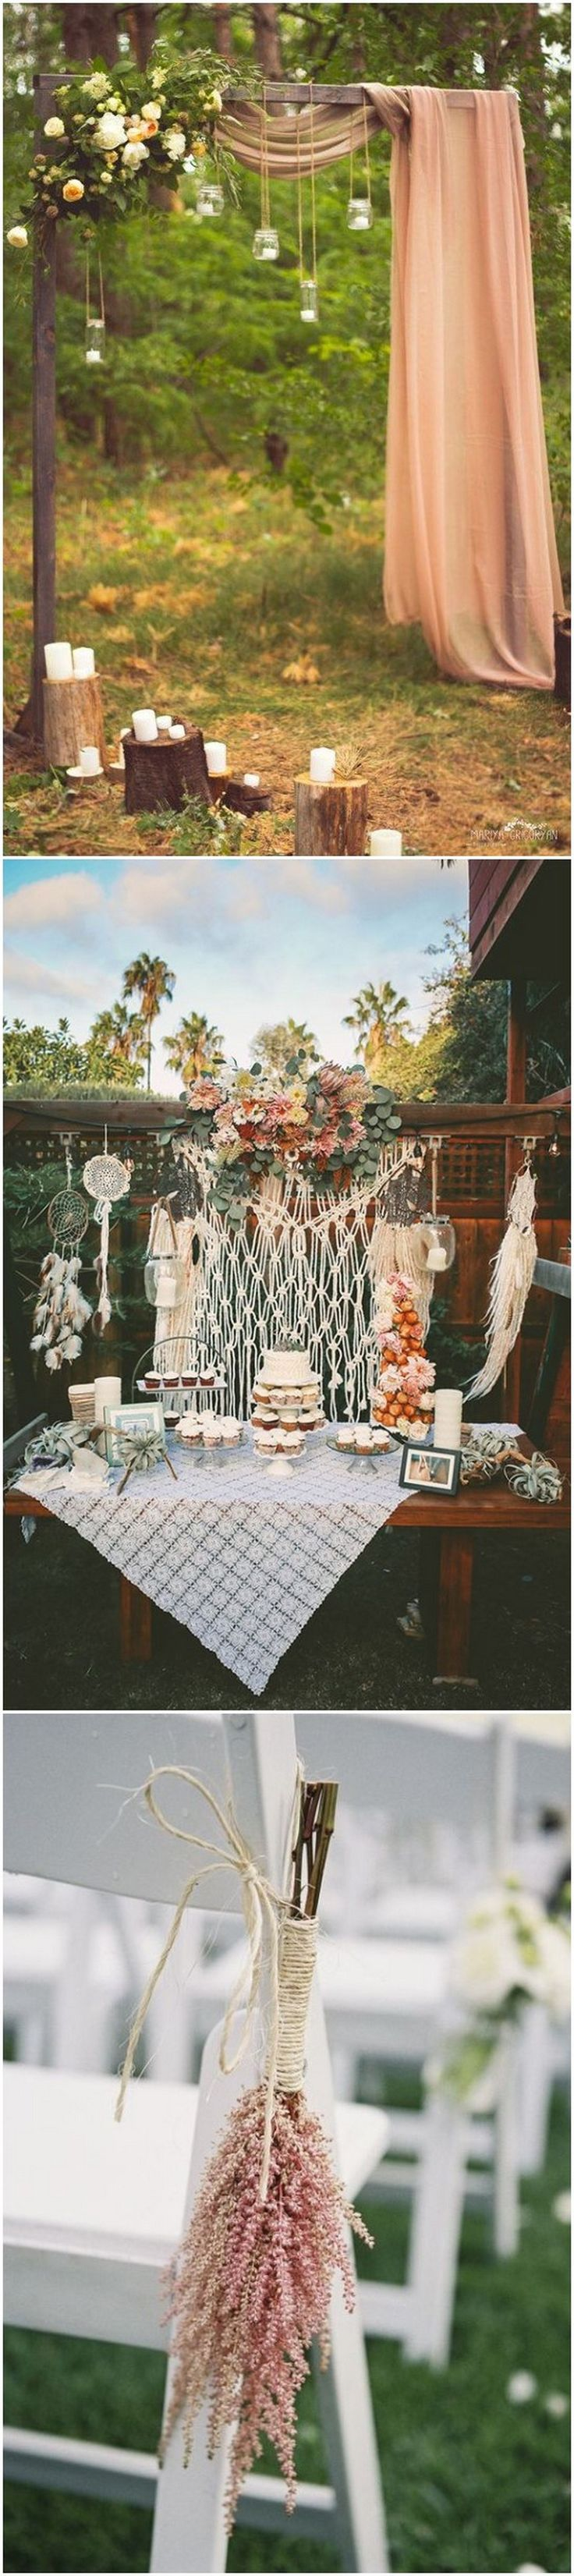 Wedding decorations with wine bottles november 2018  best Our Wedding images on Pinterest  Casamento Wedding ideas